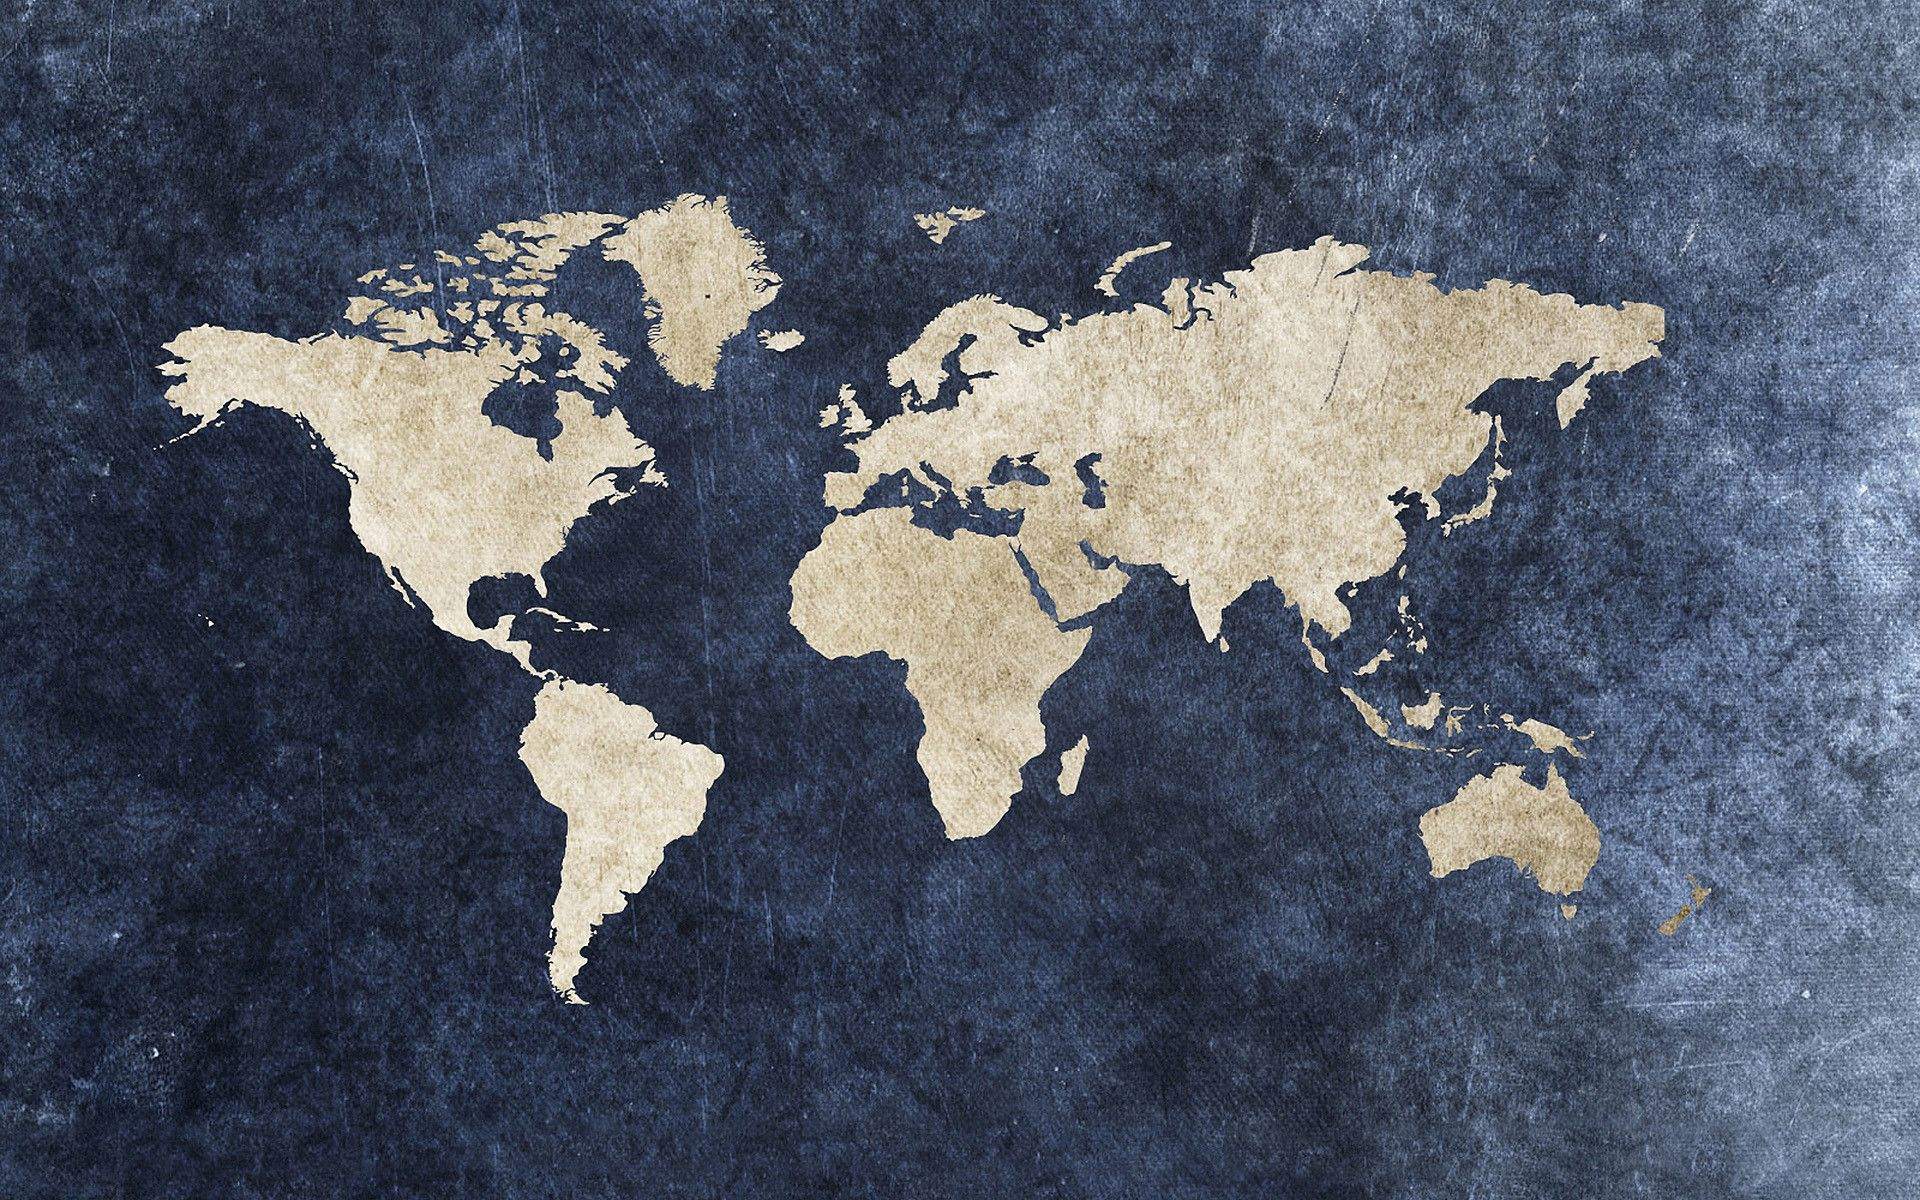 World Map Wallpapers Full Hd Wallpaper Search Mac Achtergrond Pc Achtergrond Computer Achtergrond